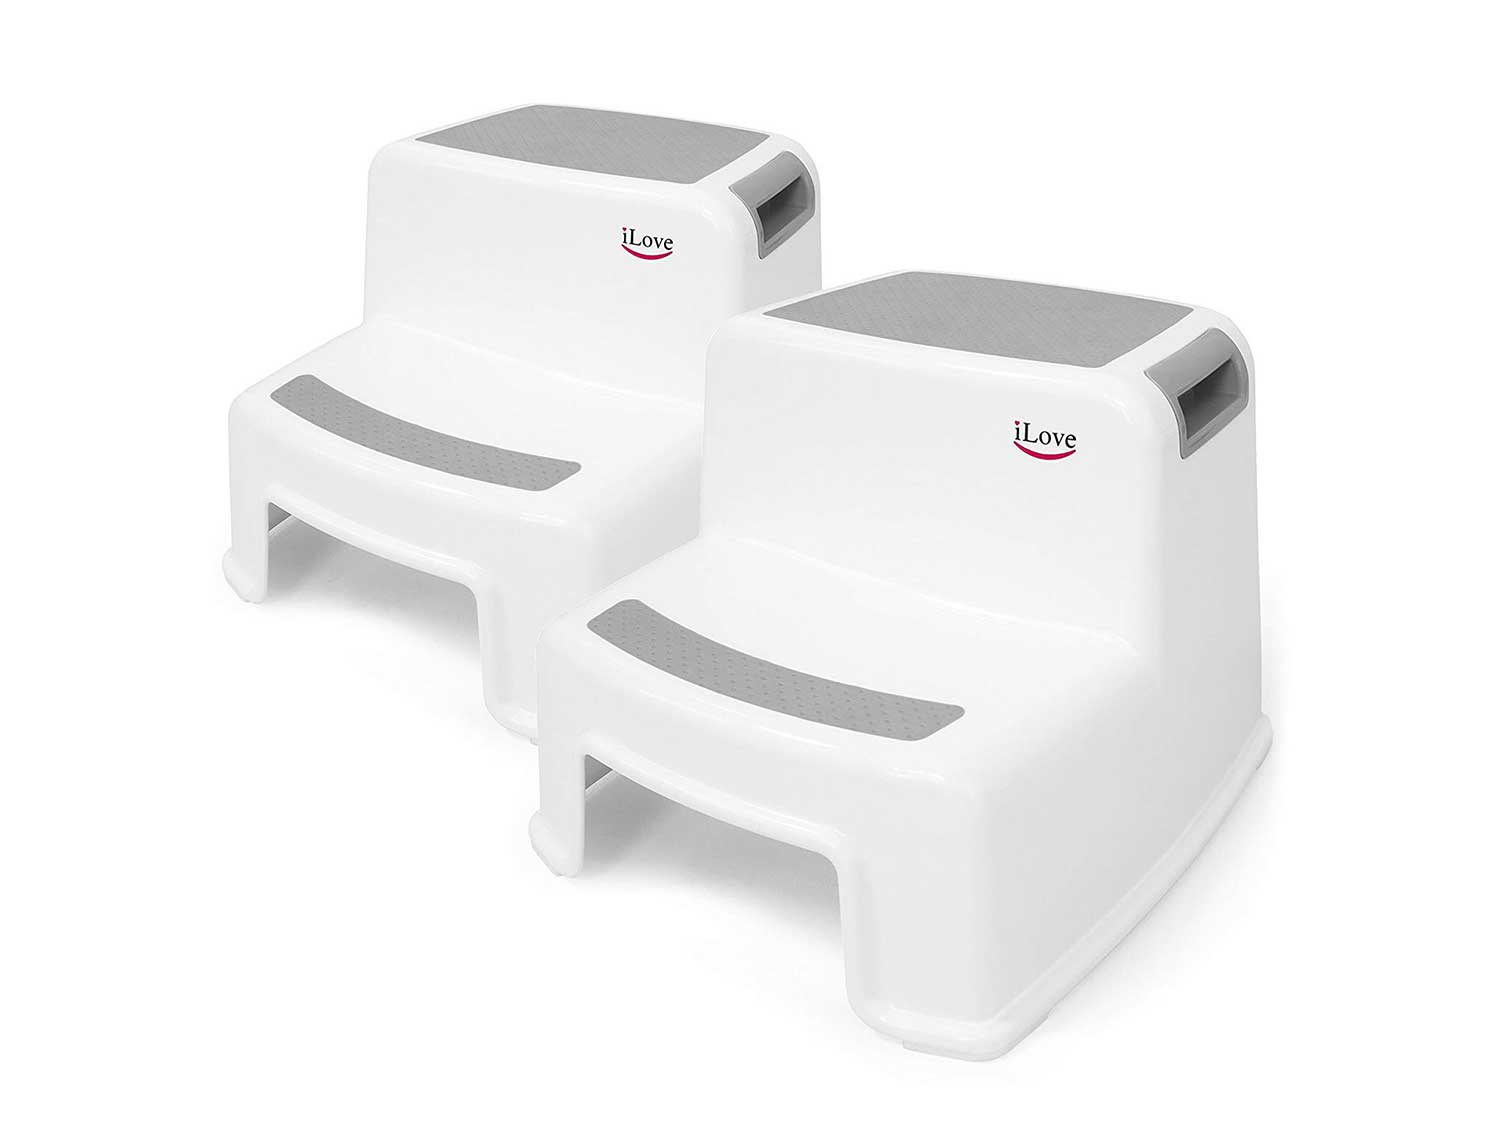 2 Step Stool for Kids (Gray 2 Pack) | Toddler Stool for Toilet Potty Training | Slip Resistant Soft Grip for Safety as Bathroom Potty Stool & Kitchen Step Stool | Dual Height & Wide Two Step